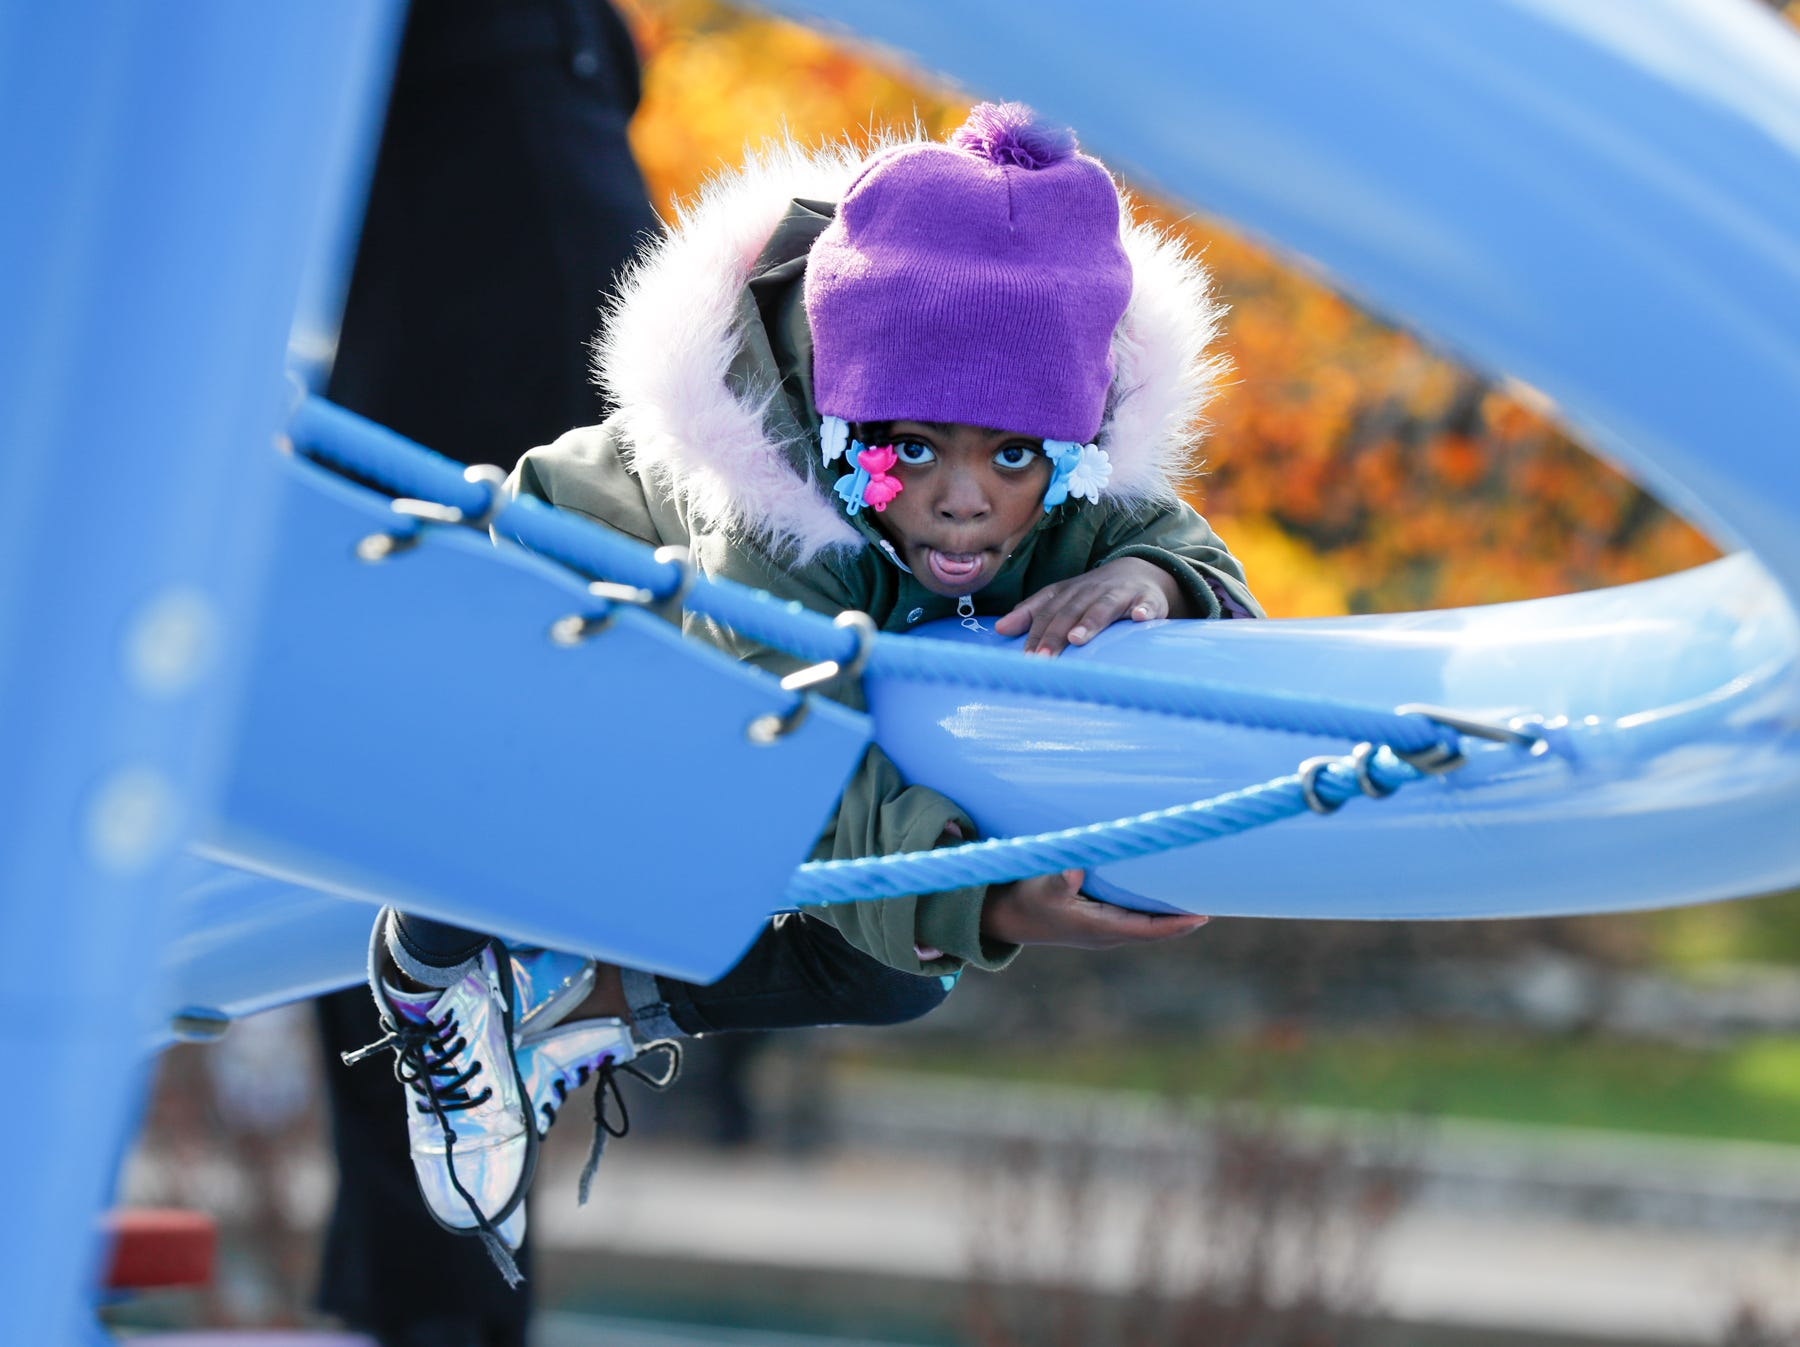 Karter Dycus climbs new playscape equipment during the grand opening celebration of the Colts Canal Play Space in Indianapolis on Thursday, Nov. 8, 2018.